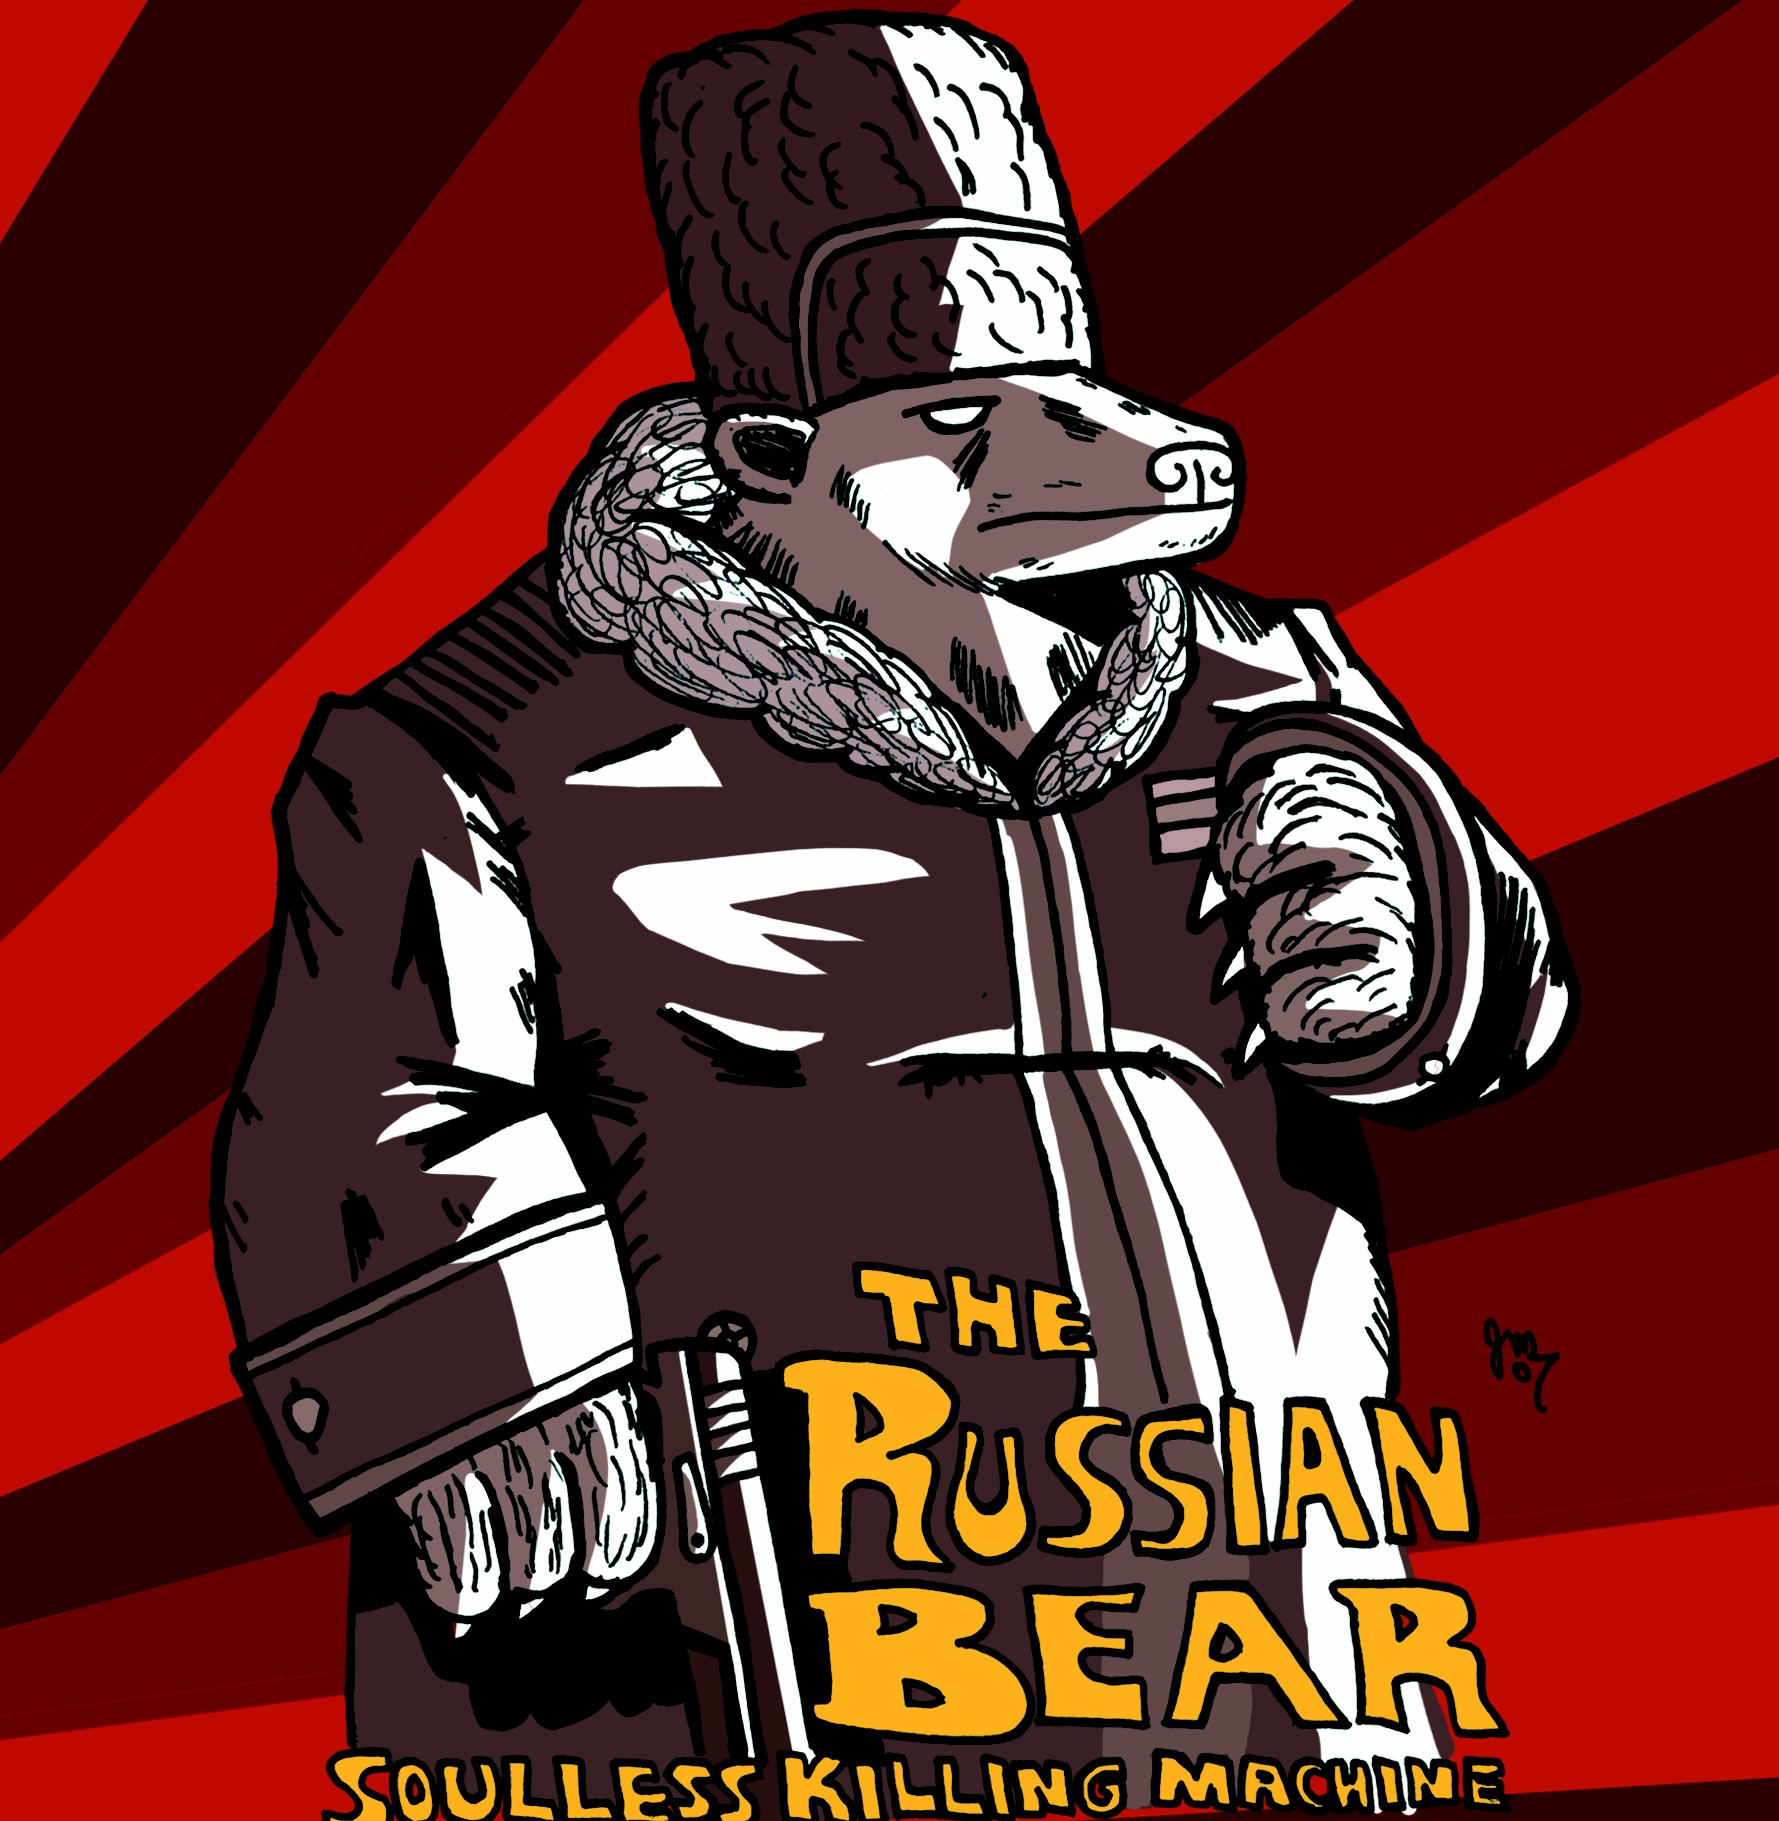 The Russian Bear: Soulless Killing Machine